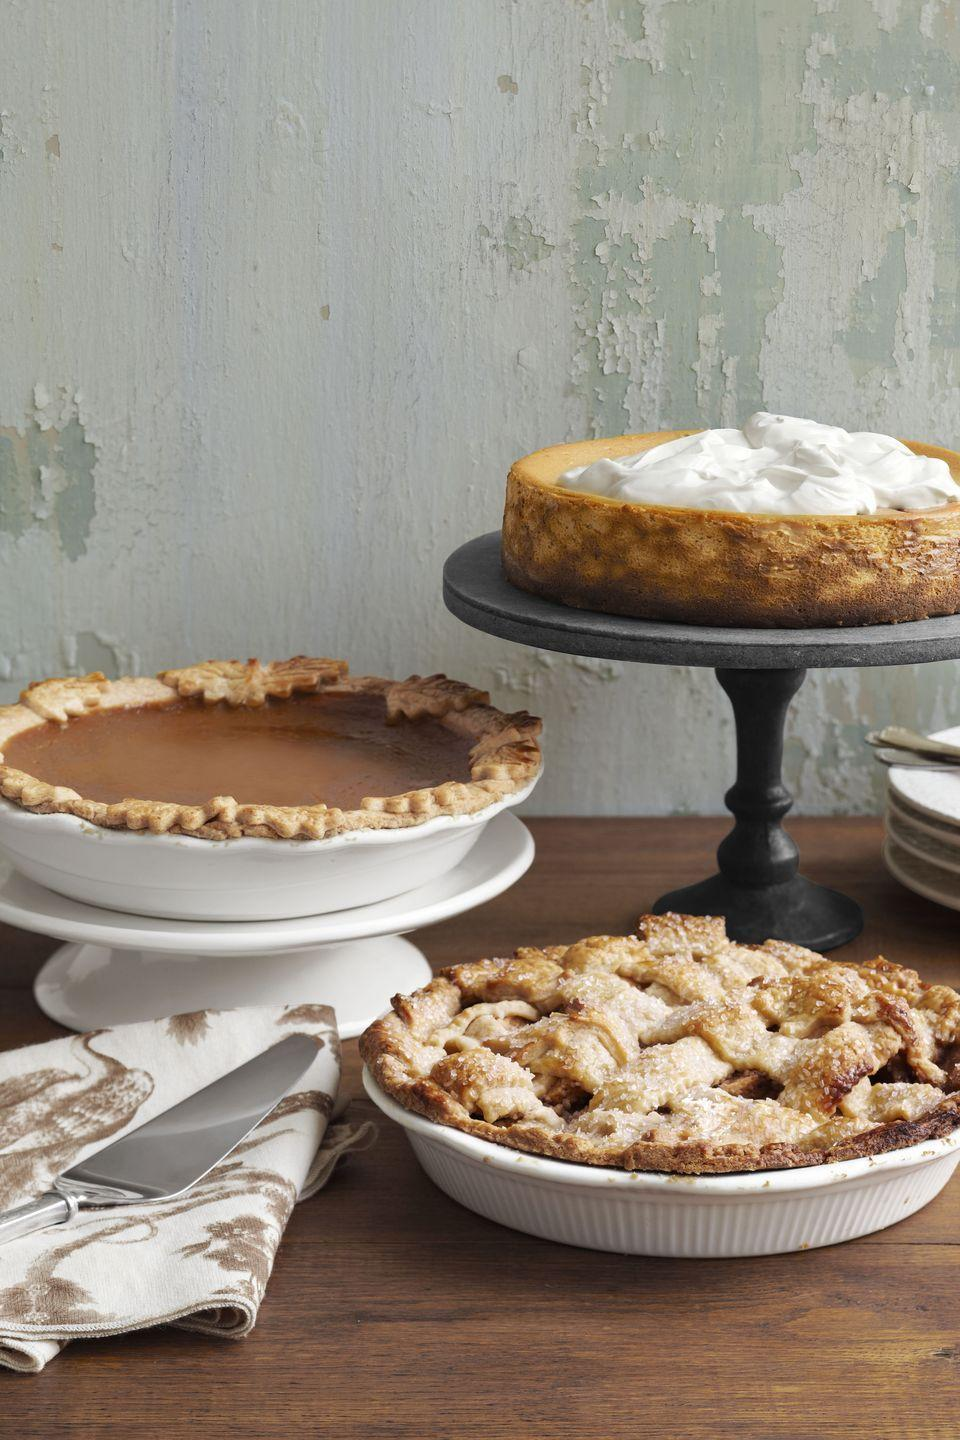 """<p><em>Far Left:</em> """"We use half lard, half butter for our sweet-potato pie dough,"""" notes Josh Kilmer-Purcell of <a href=""""https://go.redirectingat.com?id=74968X1596630&url=http%3A%2F%2Fbeekman1802.com%2F&sref=https%3A%2F%2Fwww.countryliving.com%2Ffood-drinks%2Fg1368%2Fthanksgiving-pies%2F"""" rel=""""nofollow noopener"""" target=""""_blank"""" data-ylk=""""slk:Bekman 1802"""" class=""""link rapid-noclick-resp"""">Bekman 1802</a>, """"but straight-up butter works, too.""""</p><p><em>Bottom:</em> Thick slices of Granny Smith and Macintosh apples — tossed with rosemary, honey, and cinnamon—nestle beneath a rustic lattice crust.</p><p><strong>Recipes:</strong></p><p><strong><a href=""""https://www.countryliving.com/food-drinks/recipes/a3900/sour-cream-sweet-potato-pie-recipe-clx1111/"""" rel=""""nofollow noopener"""" target=""""_blank"""" data-ylk=""""slk:Sour Cream-Sweet Potato Pie"""" class=""""link rapid-noclick-resp"""">Sour Cream-Sweet Potato Pie</a></strong></p><p><strong><a href=""""https://www.countryliving.com/food-drinks/recipes/a3896/apple-pie-rosemary-honey-recipe-clx1111/"""" rel=""""nofollow noopener"""" target=""""_blank"""" data-ylk=""""slk:Apple Pie with Rosemary and Honey"""" class=""""link rapid-noclick-resp"""">Apple Pie with Rosemary and Honey</a></strong></p>"""